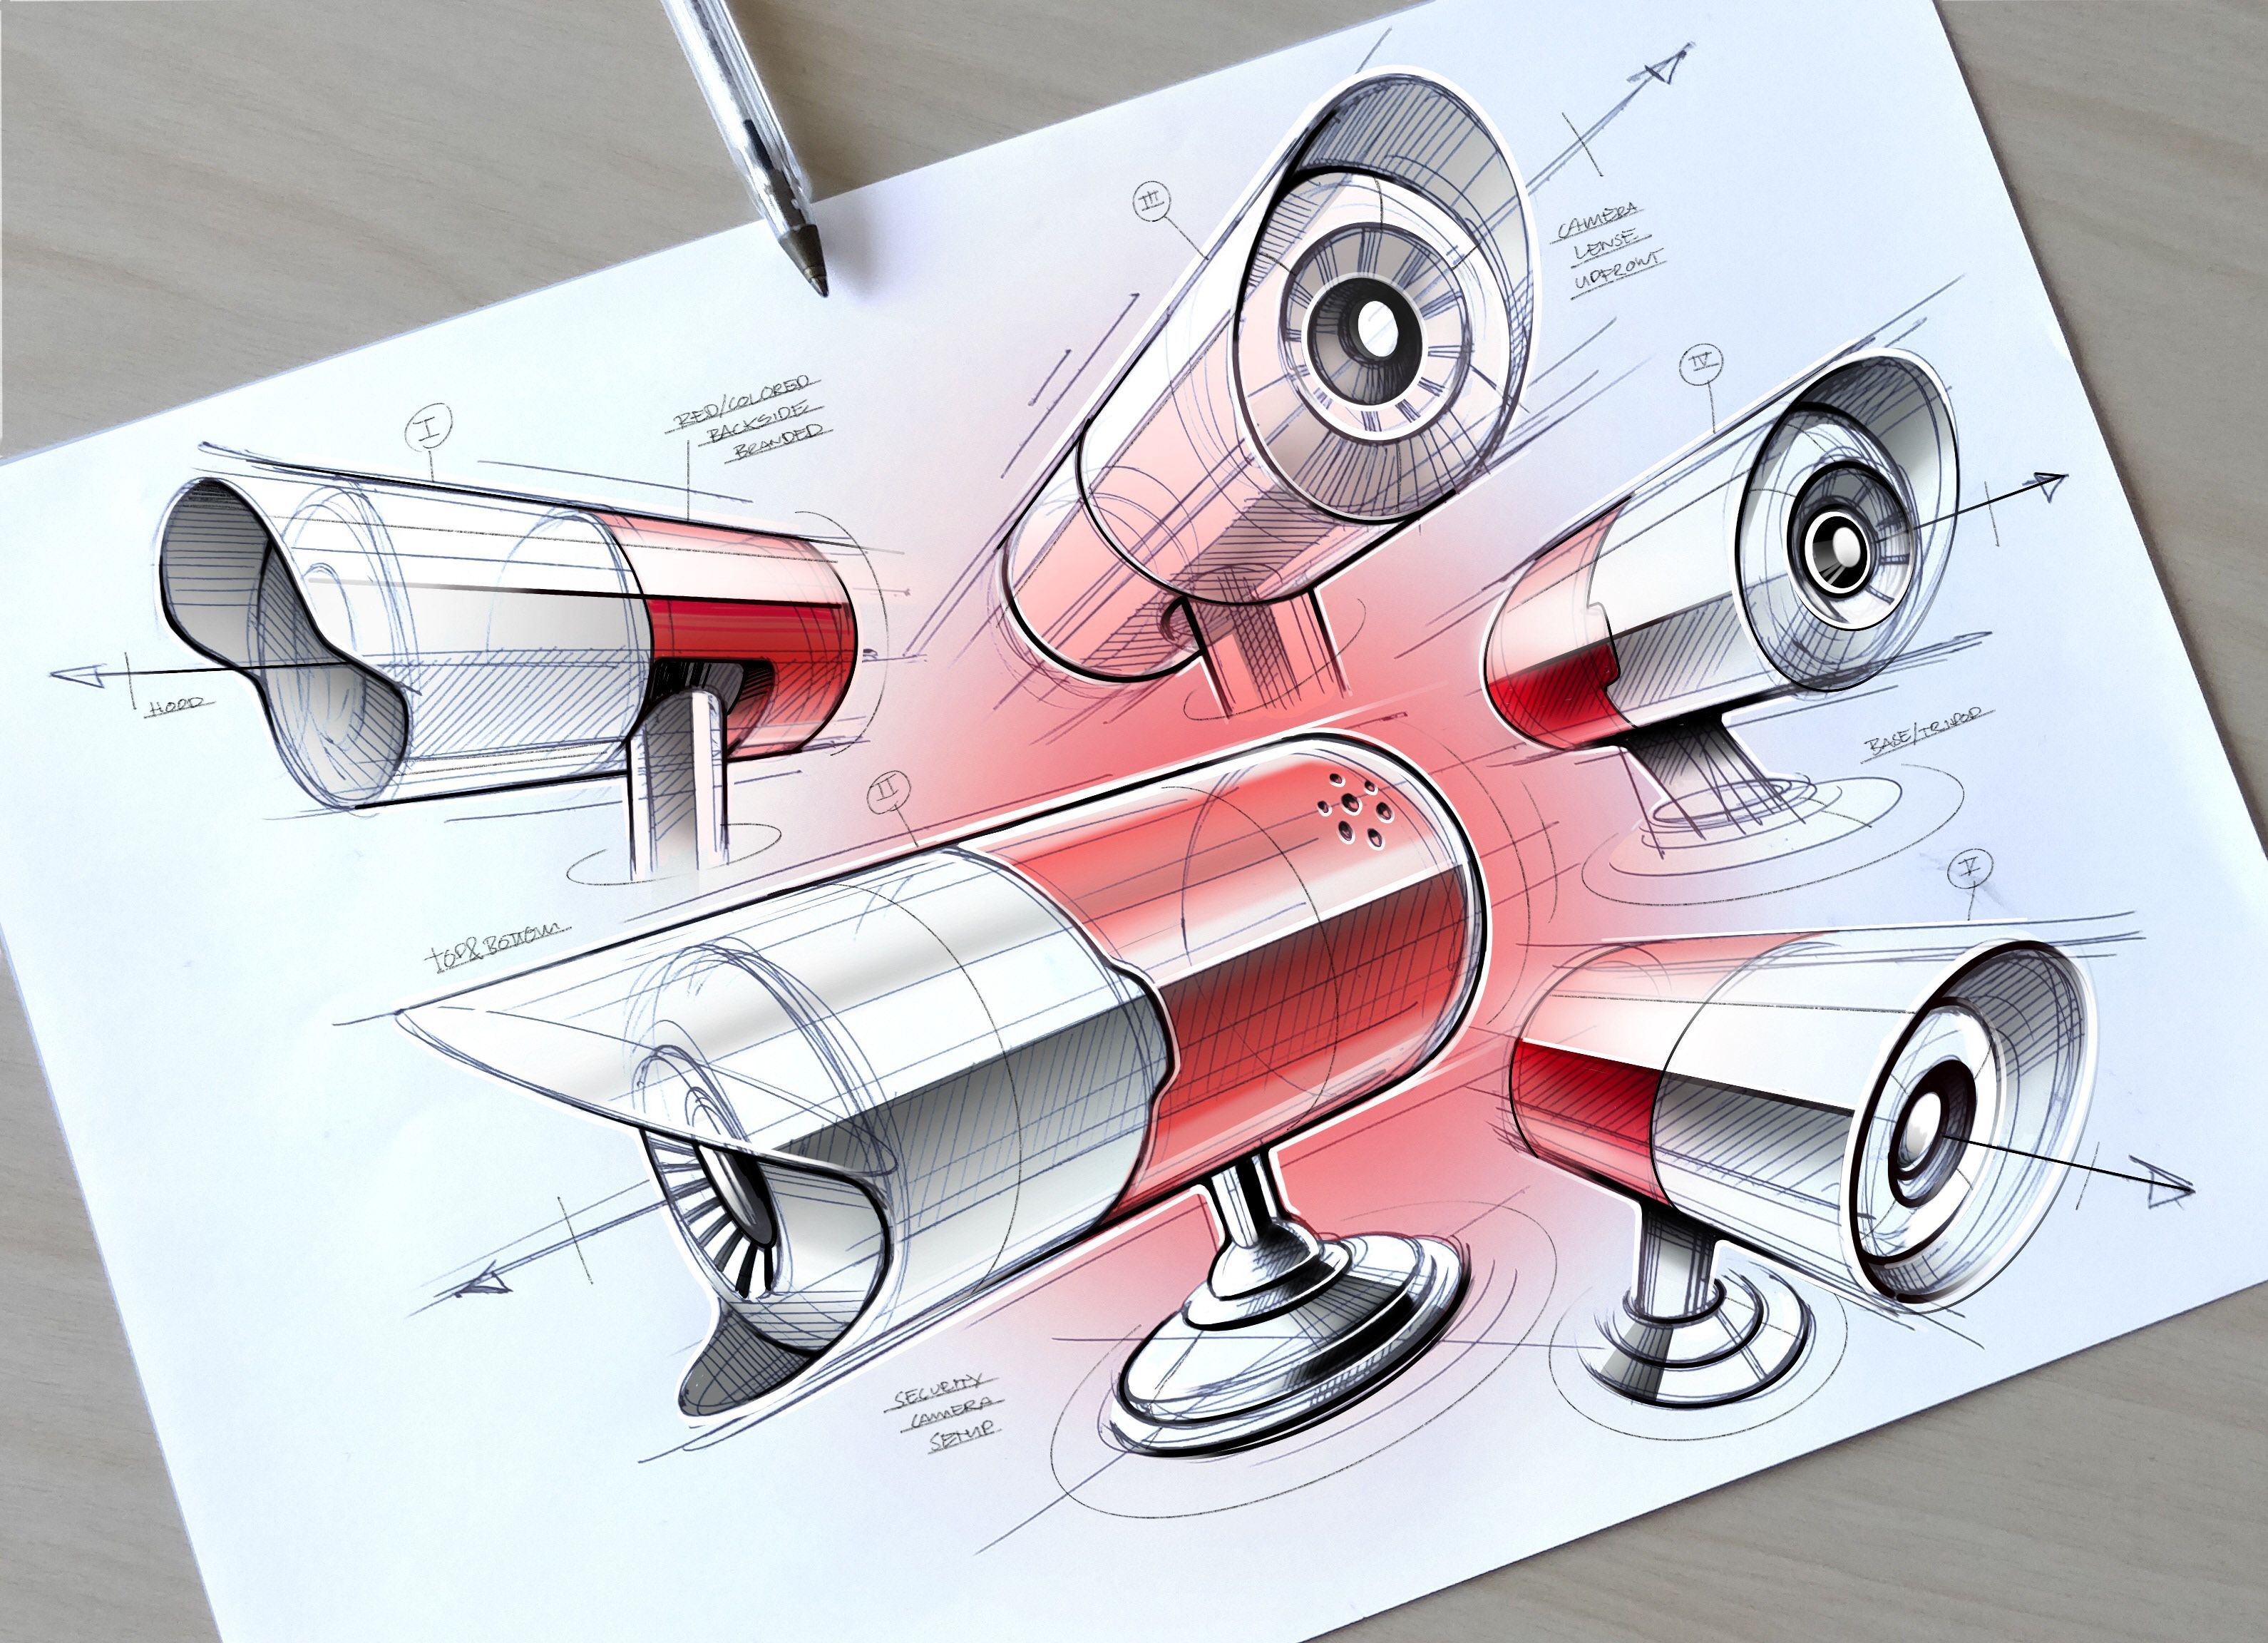 快來看看這個 Behance 專案 Design Sketches Illustrations 2019